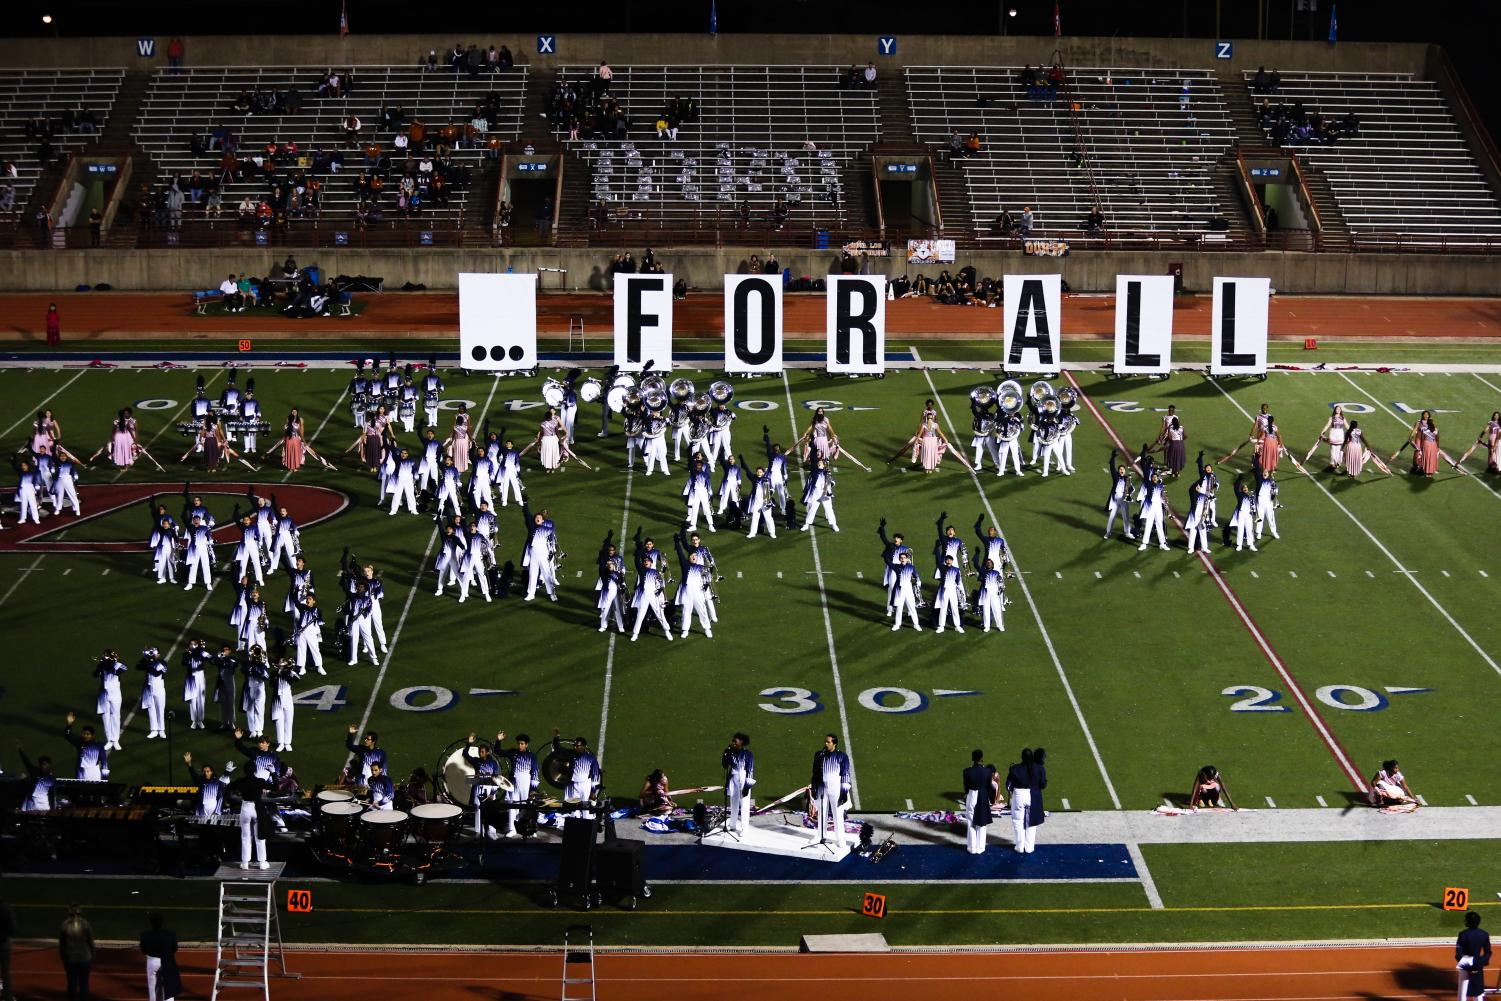 The Duncanville Band performing during halftime vs W.T. White (Photo by Sarah Colchado)